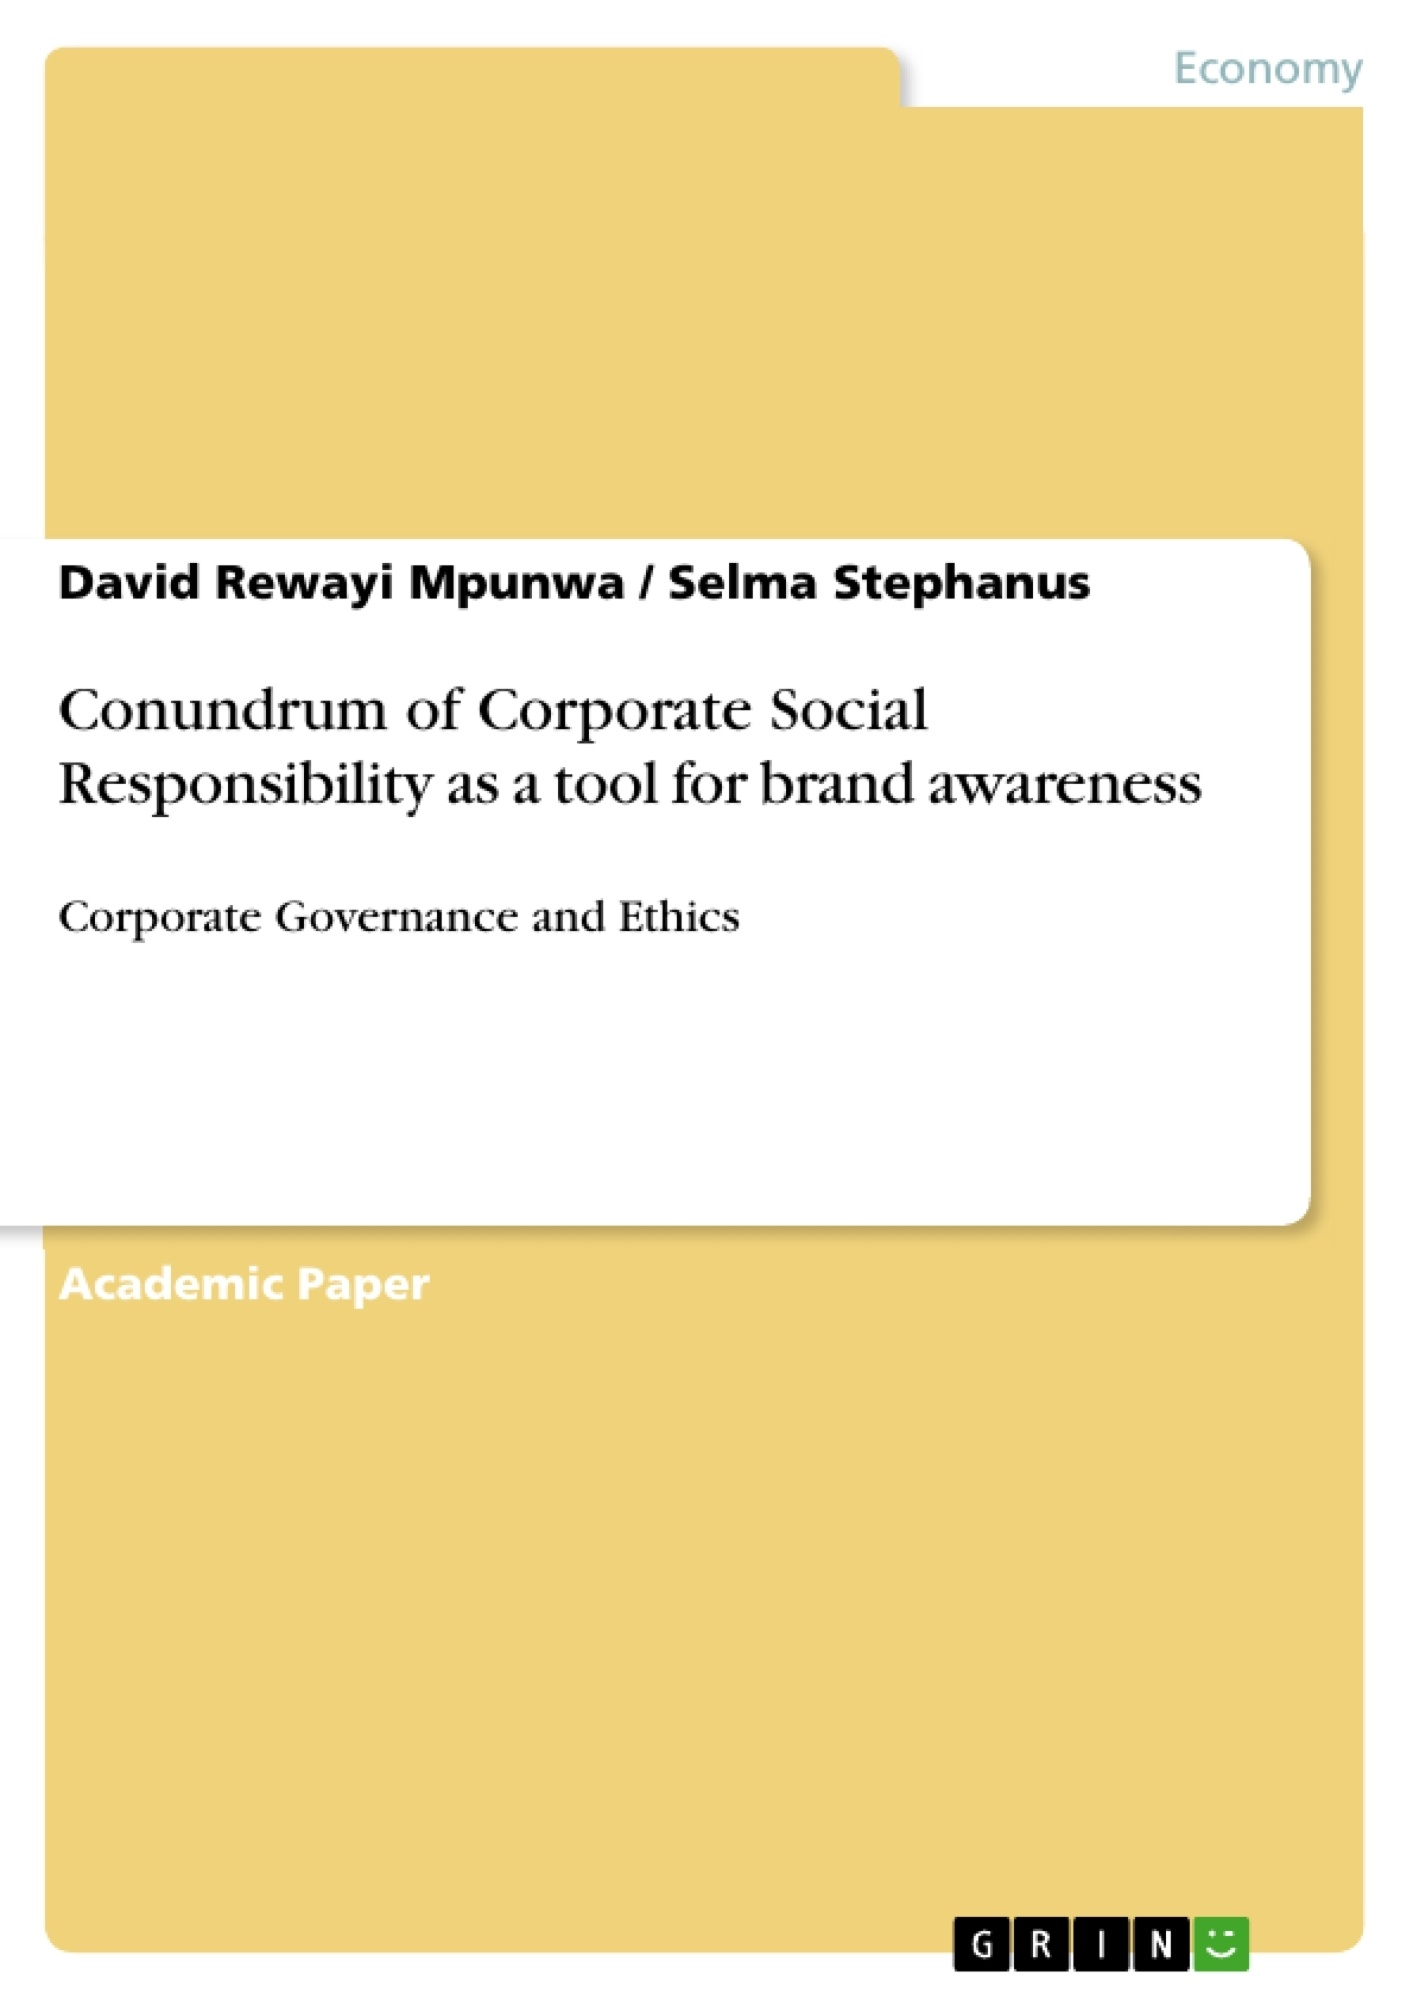 Title: Conundrum of Corporate Social Responsibility as a tool for brand awareness